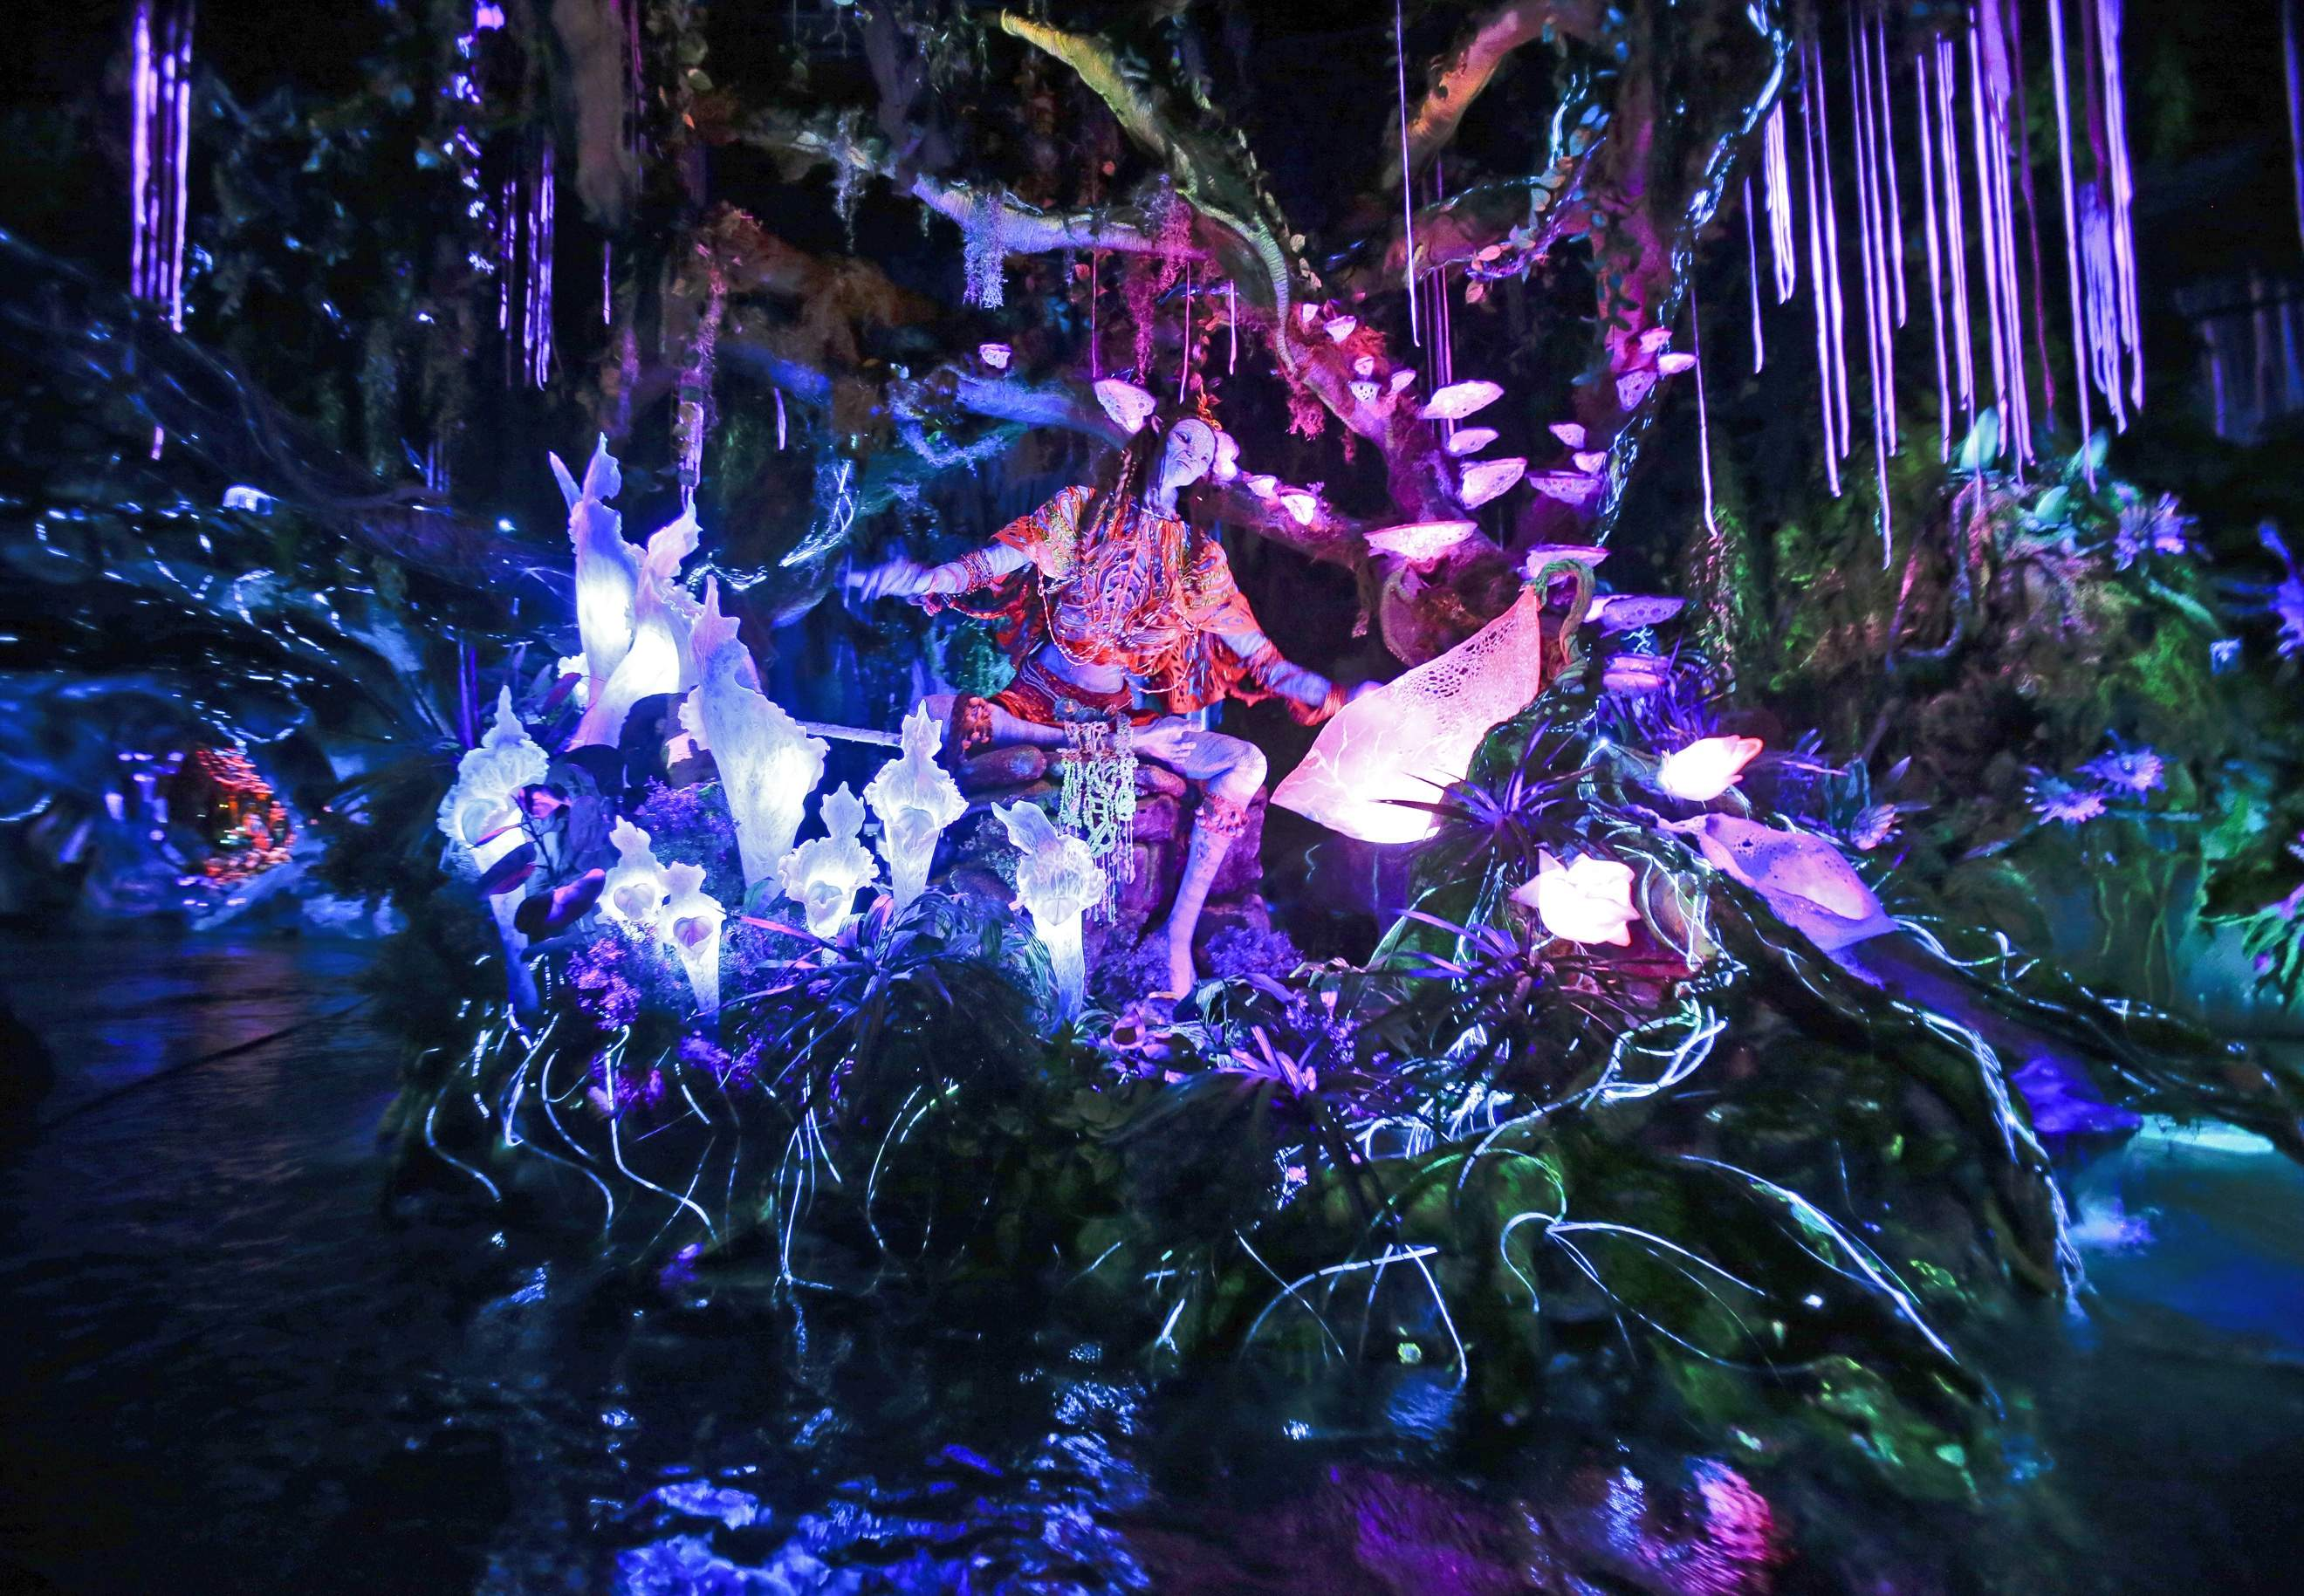 In this Saturday, April 29, 2017, photo, the Na'vi Shaman of Songs celebrates with music in Na'vi River Journey ride at Pandora-World of Avatar land attraction in Disney's Animal Kingdom theme park at Walt Disney World in Lake Buena Vista, Fla. The 12-acre land, inspired by the 'Avatar' movie, opens in Florida at the end of May at Walt Disney World's Animal Kingdom. It cost a half-billion dollars. THE ASSOCIATED PRESS